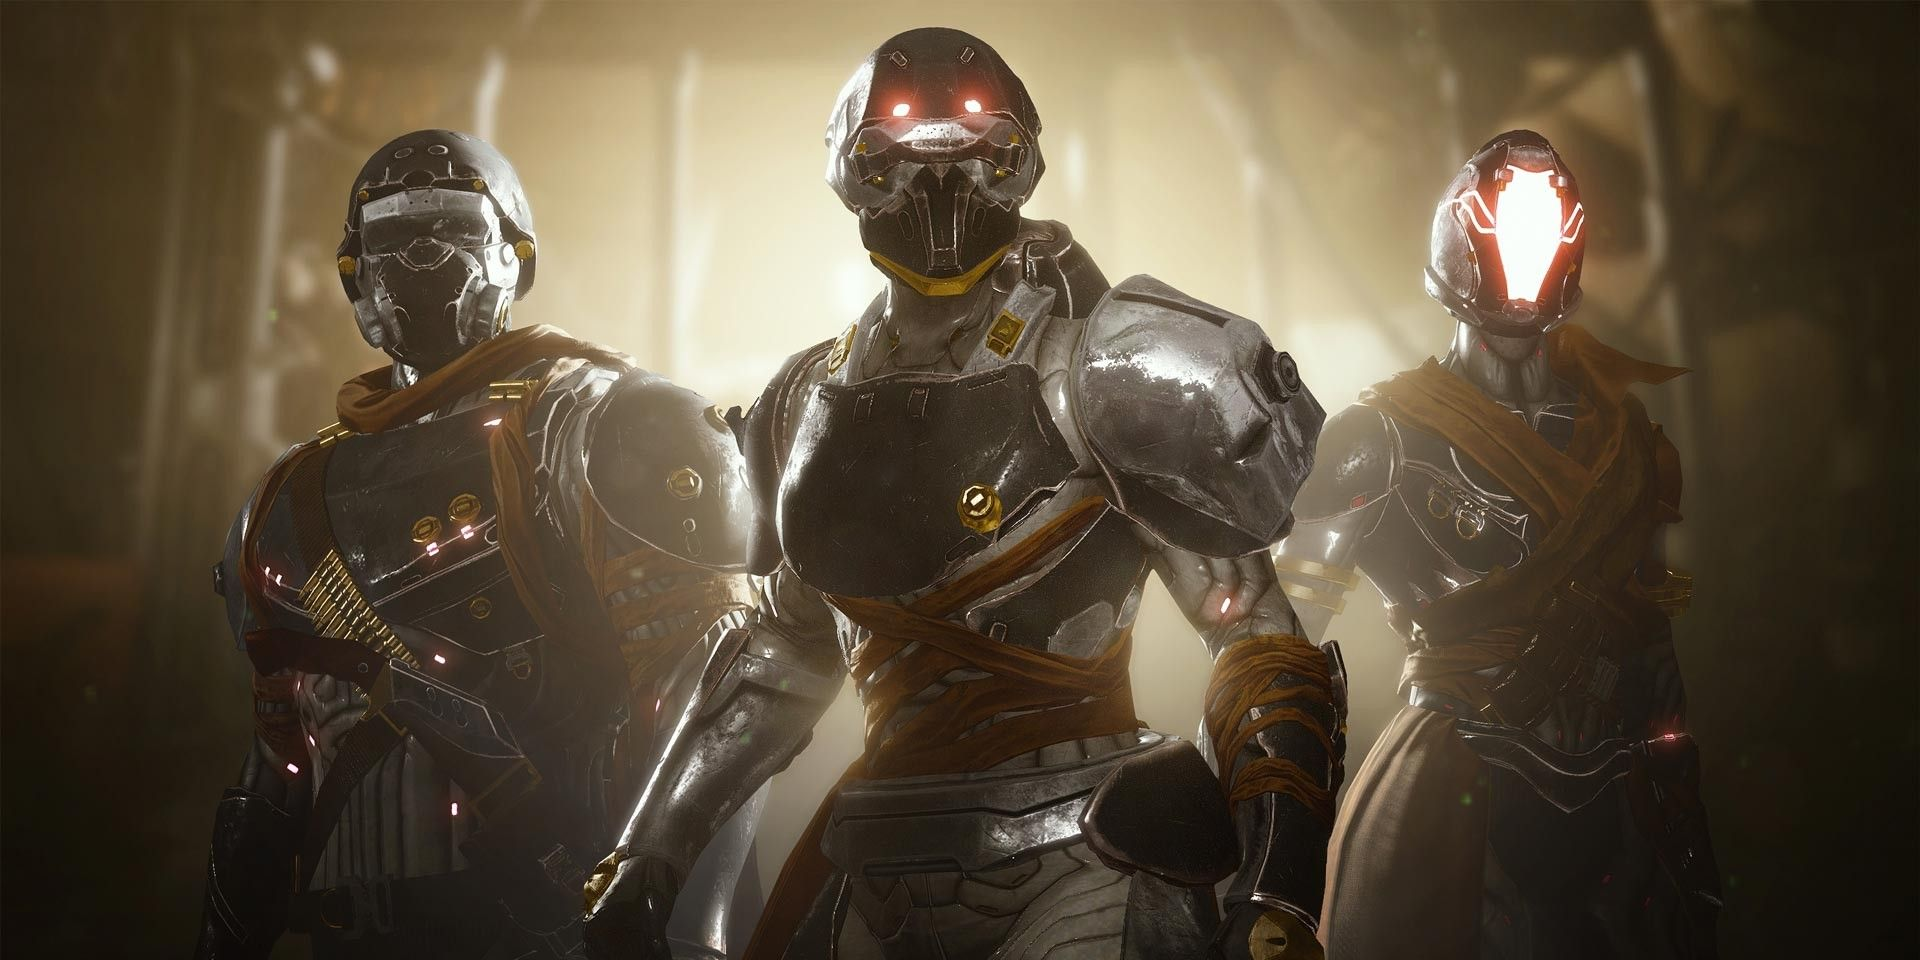 Destiny 2 Armor Rewards 1 - Download Destiny 2 & Valorant Cheat Makers Get Sued By Bungie & Riot Games for FREE - Free Game Hacks